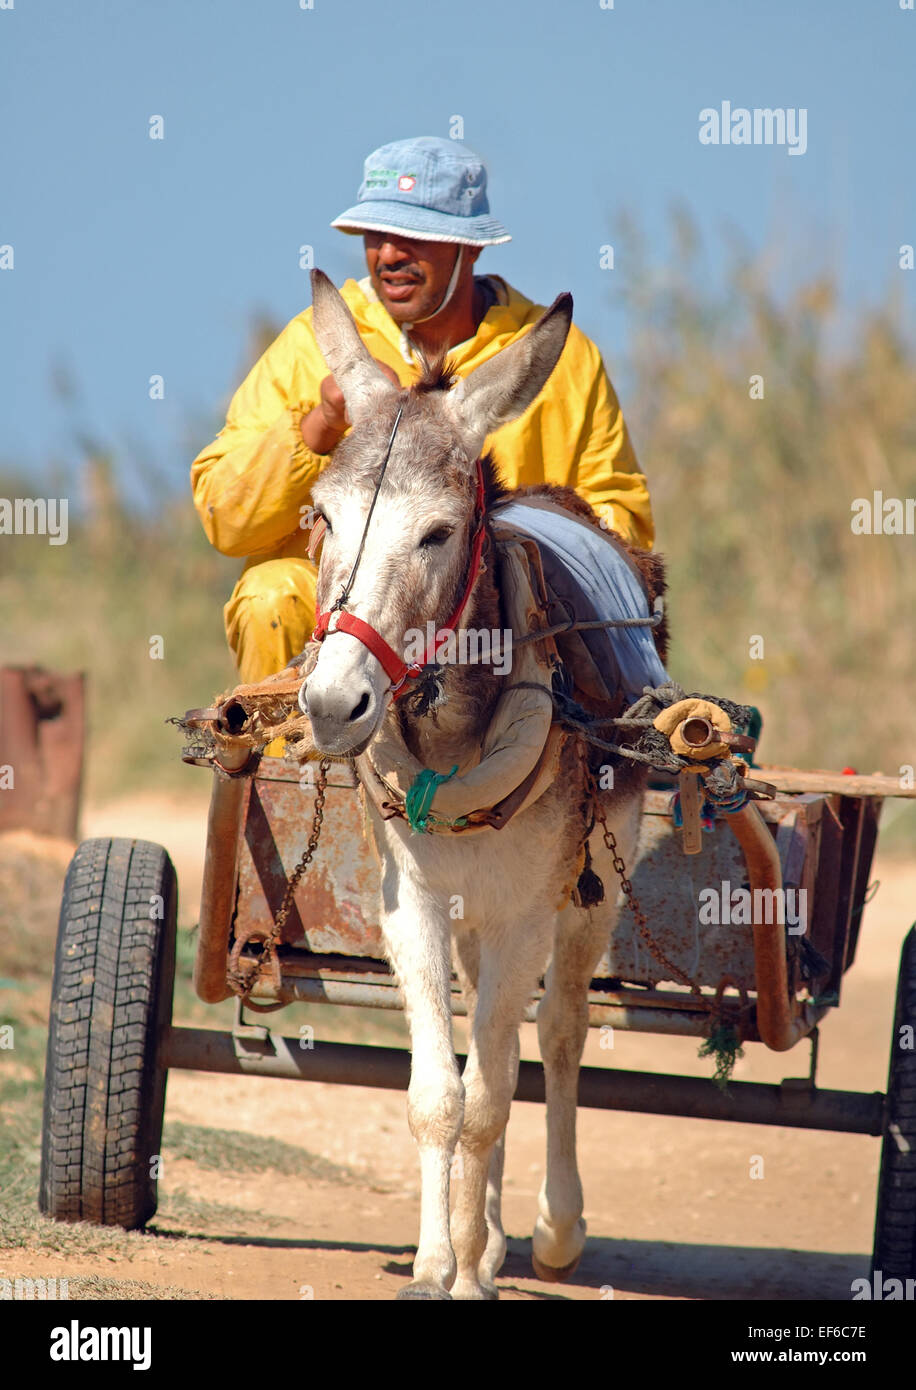 Donkey with carriage, - Stock Image